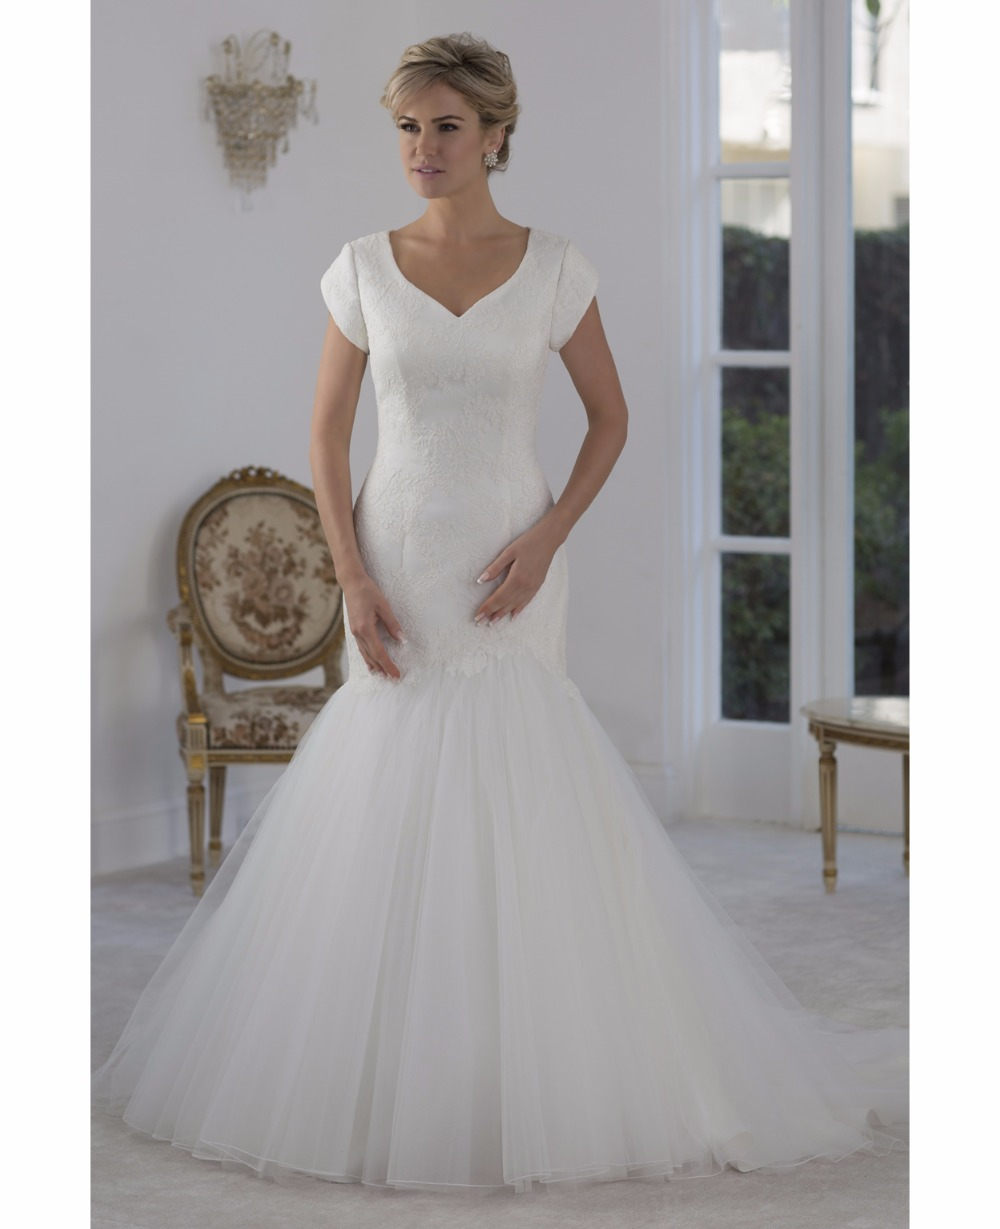 Tulle Overskirt Wedding Dresses Mermaid Bateau Neck Simple: 2019 Simple Vintage Lace Tulle Mermaid Modest Wedding